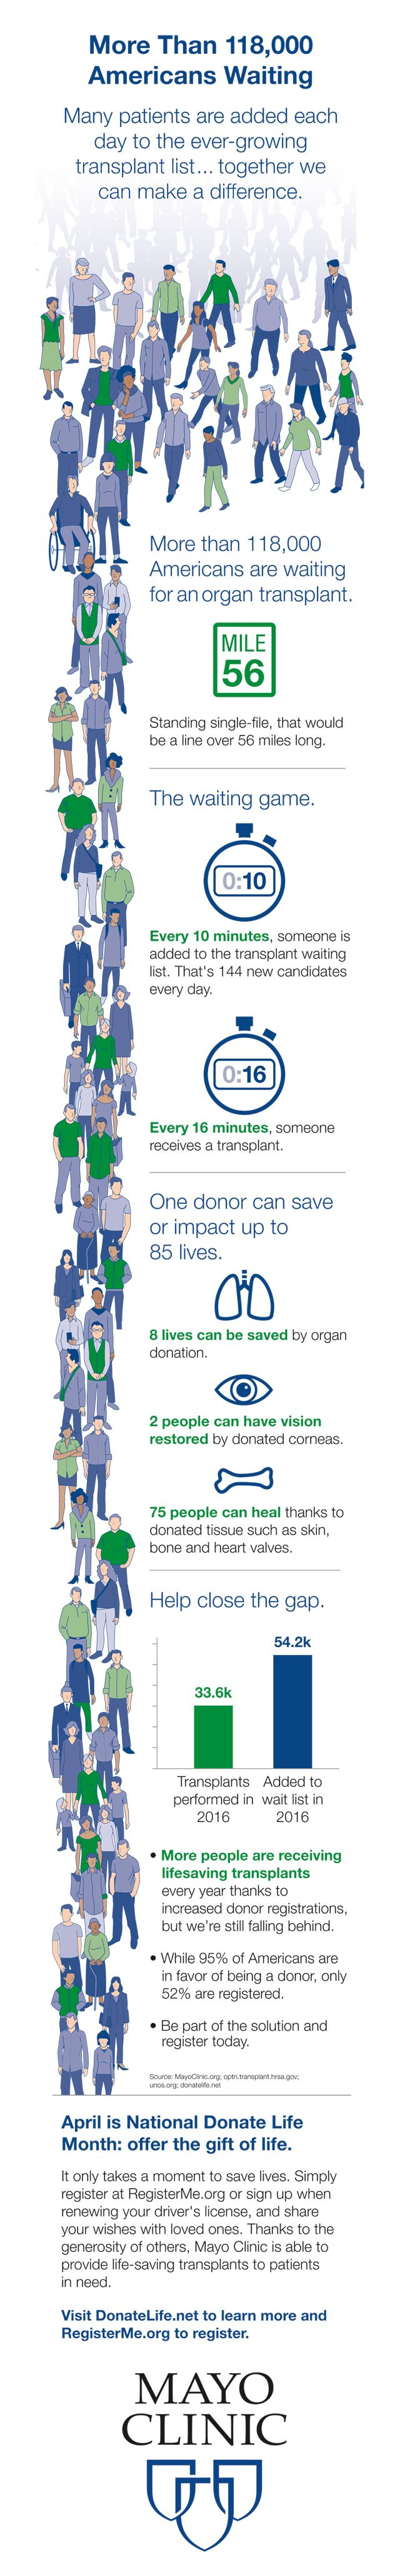 More than 118,00 Americans are waiting for an organ transplant. It only takes a moment to save lives. Visit donatelife.net to learn more and registerme.org to register.